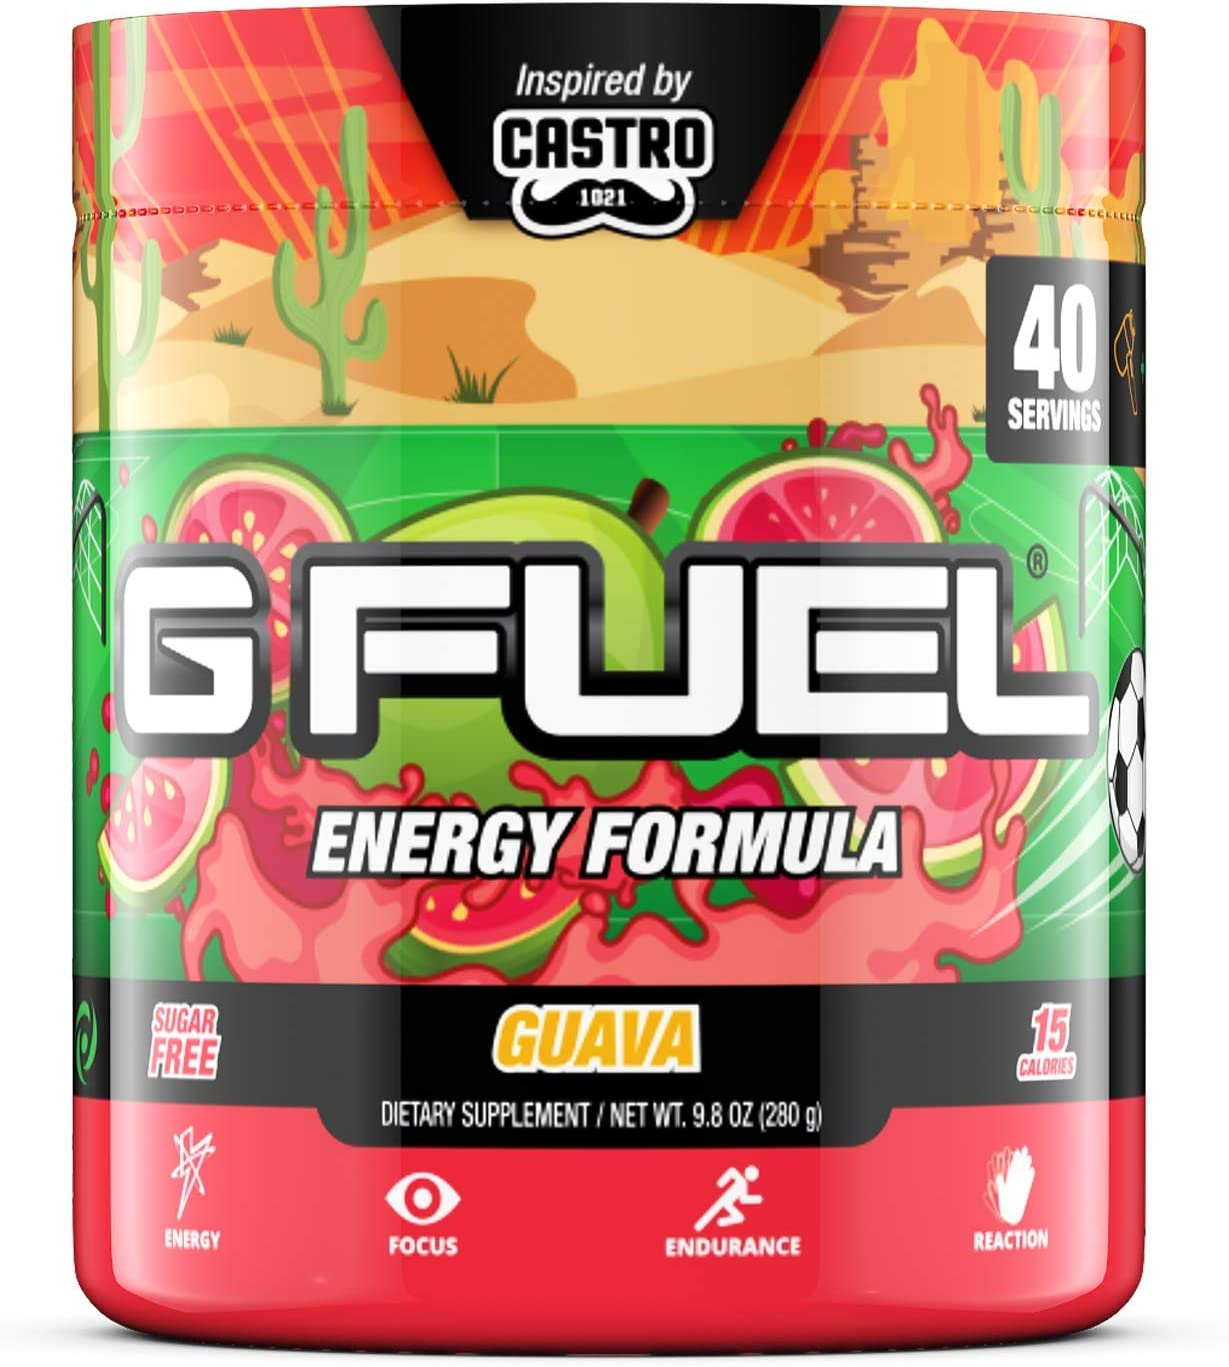 G Fuel Guava 40 Servings Elite Energy and Endurance Formula 9.8 oz.